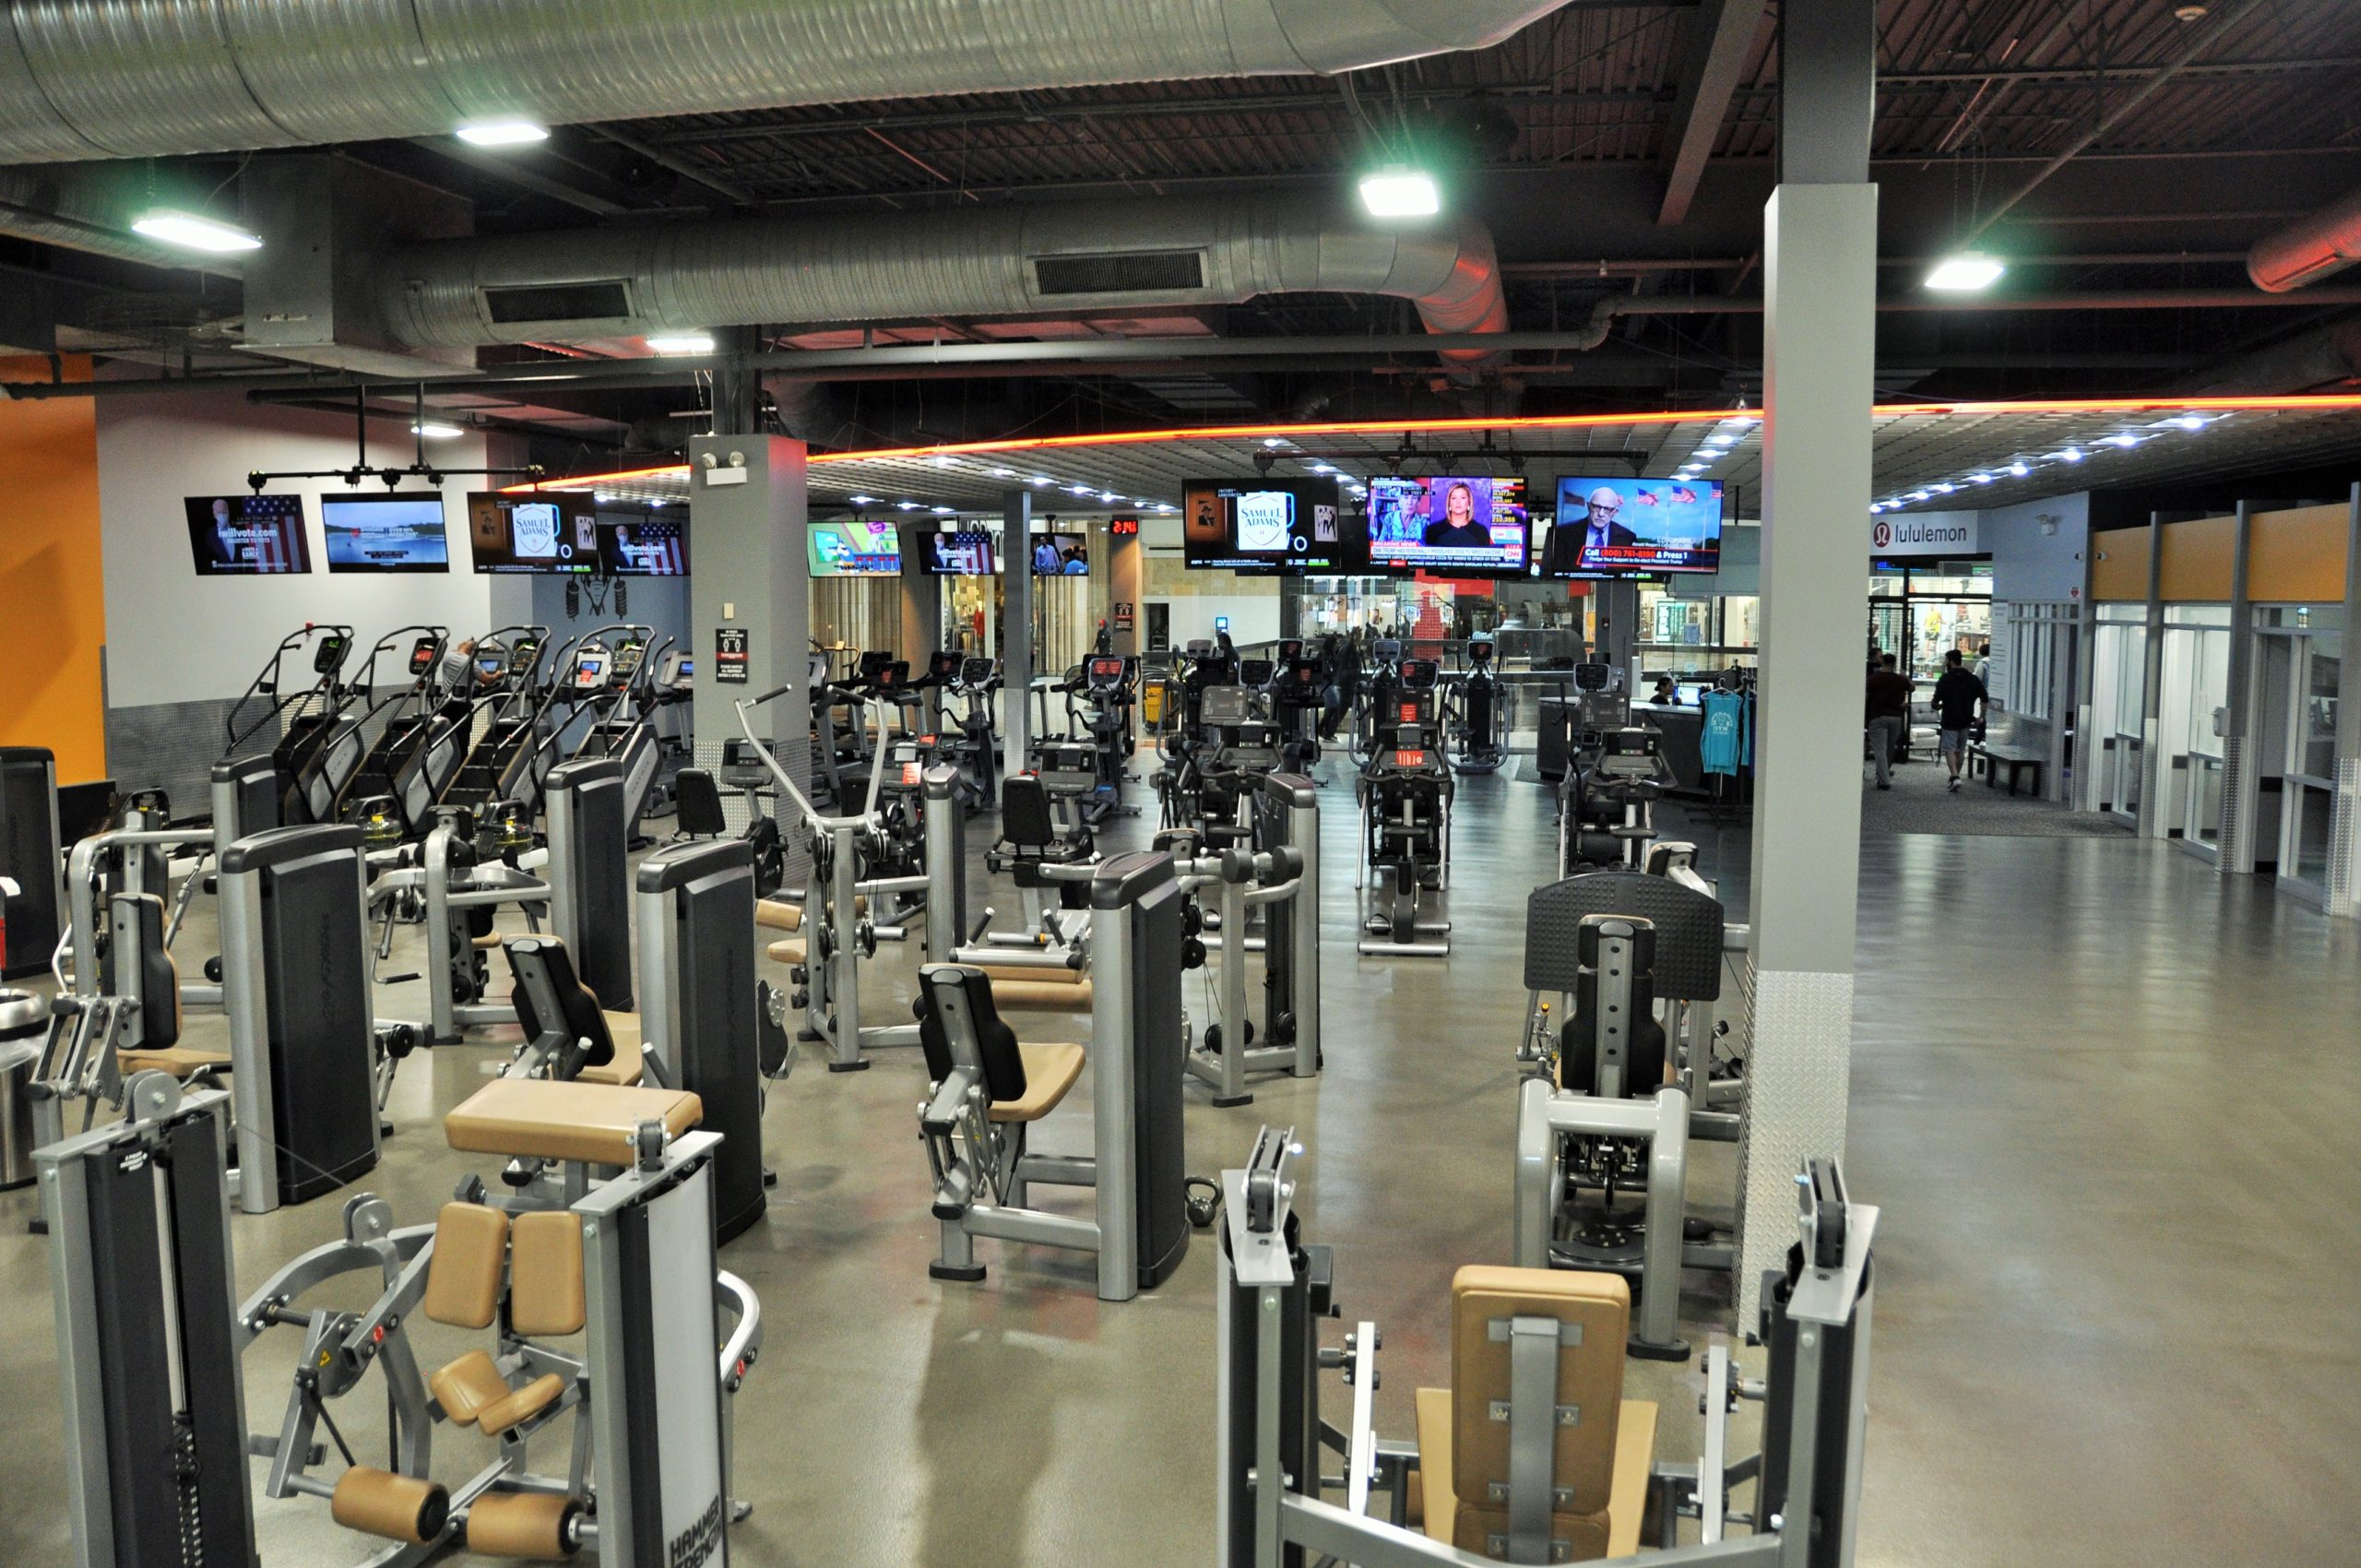 An Image of the Dearborn, MI Powerhouse Gym Location